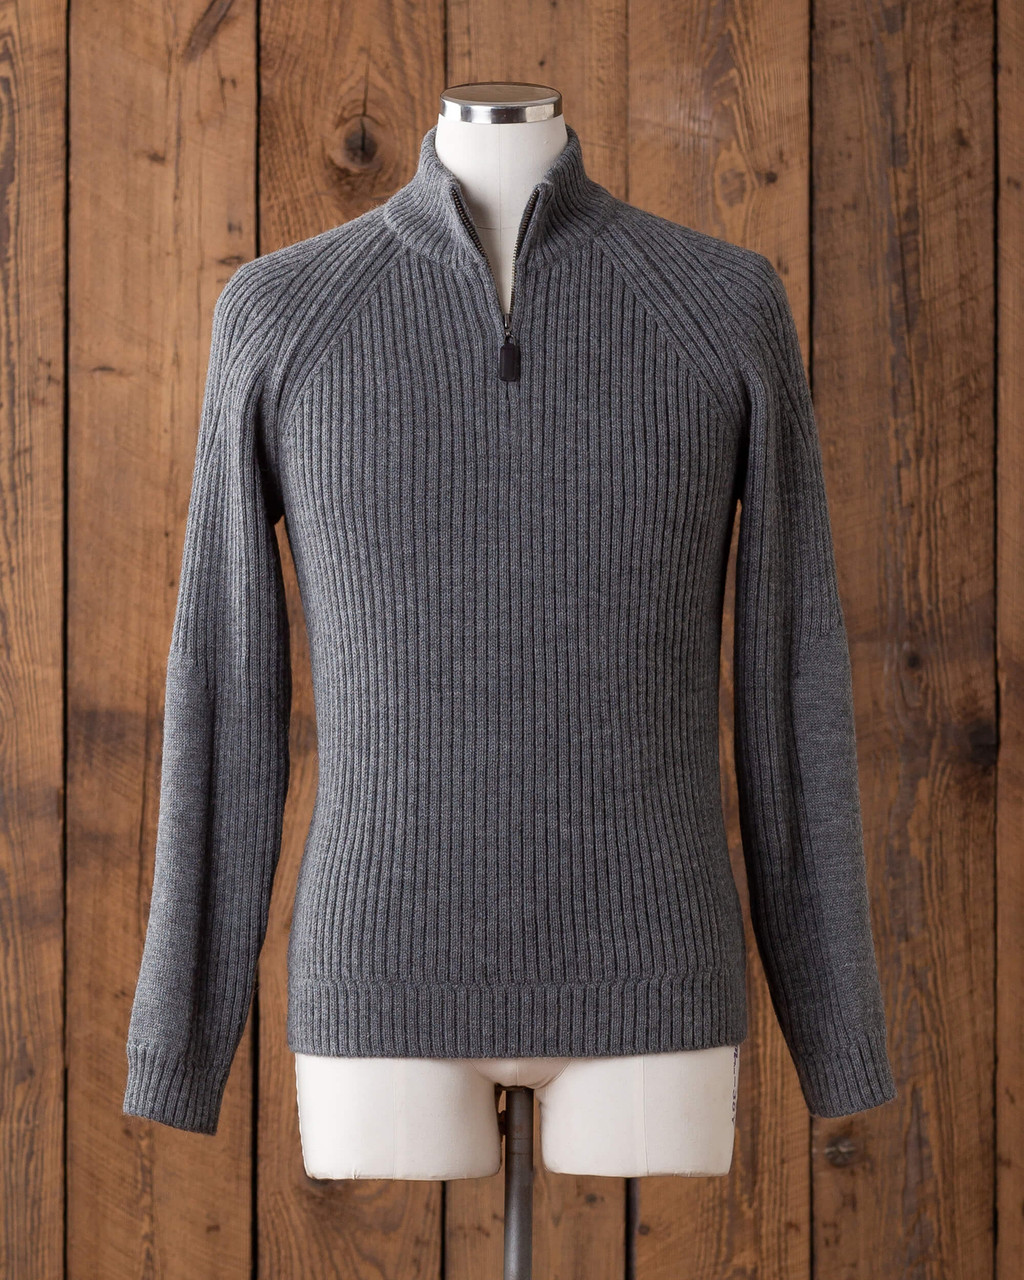 Alicia Adams Alpaca Leo Zip Sweater, mens alpaca sweater, mens zip cardigan, 100 alpaca sweater mens, alpaca sweater, dark grey alpaca wool sweater